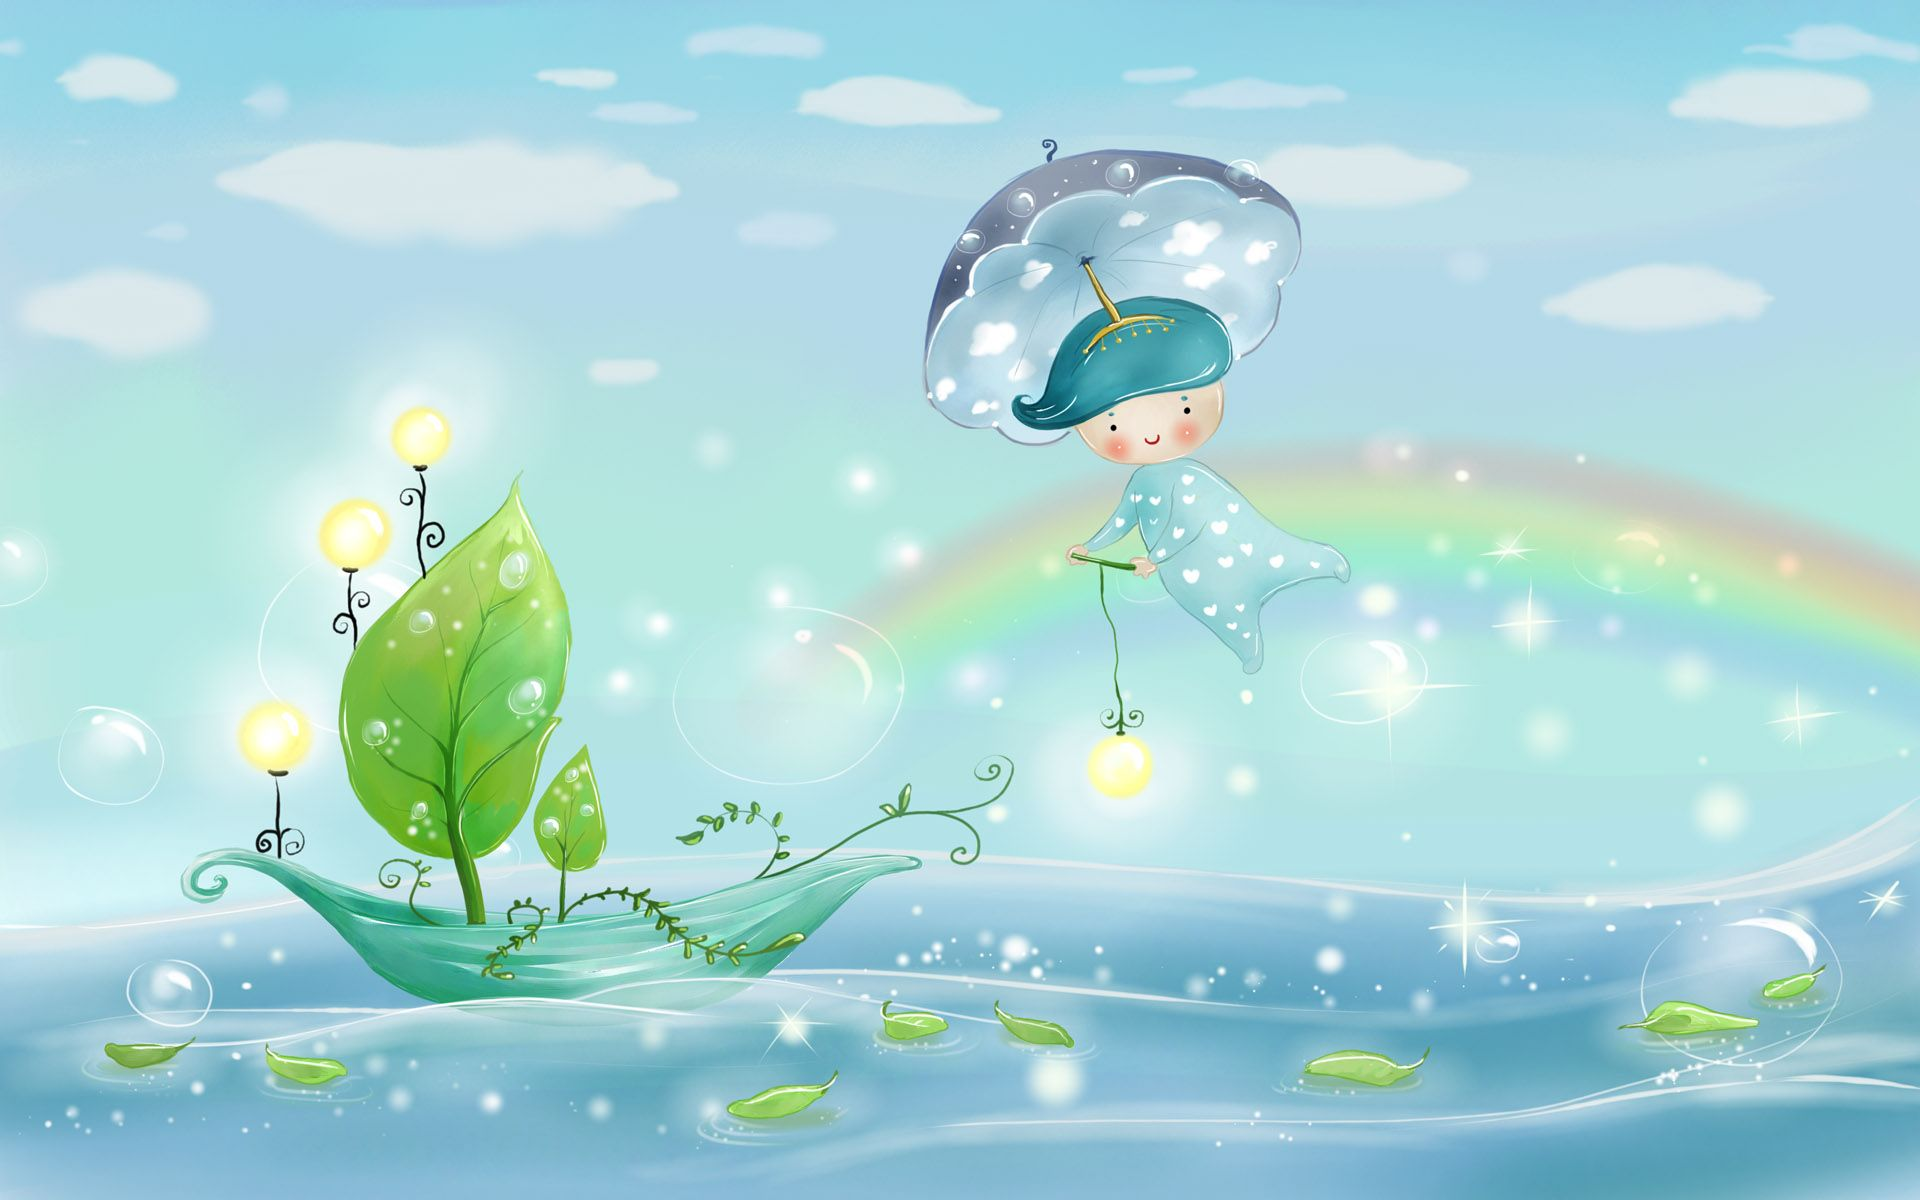 Cute Animated Moving Wallpapers For Desktop 560420 Hd